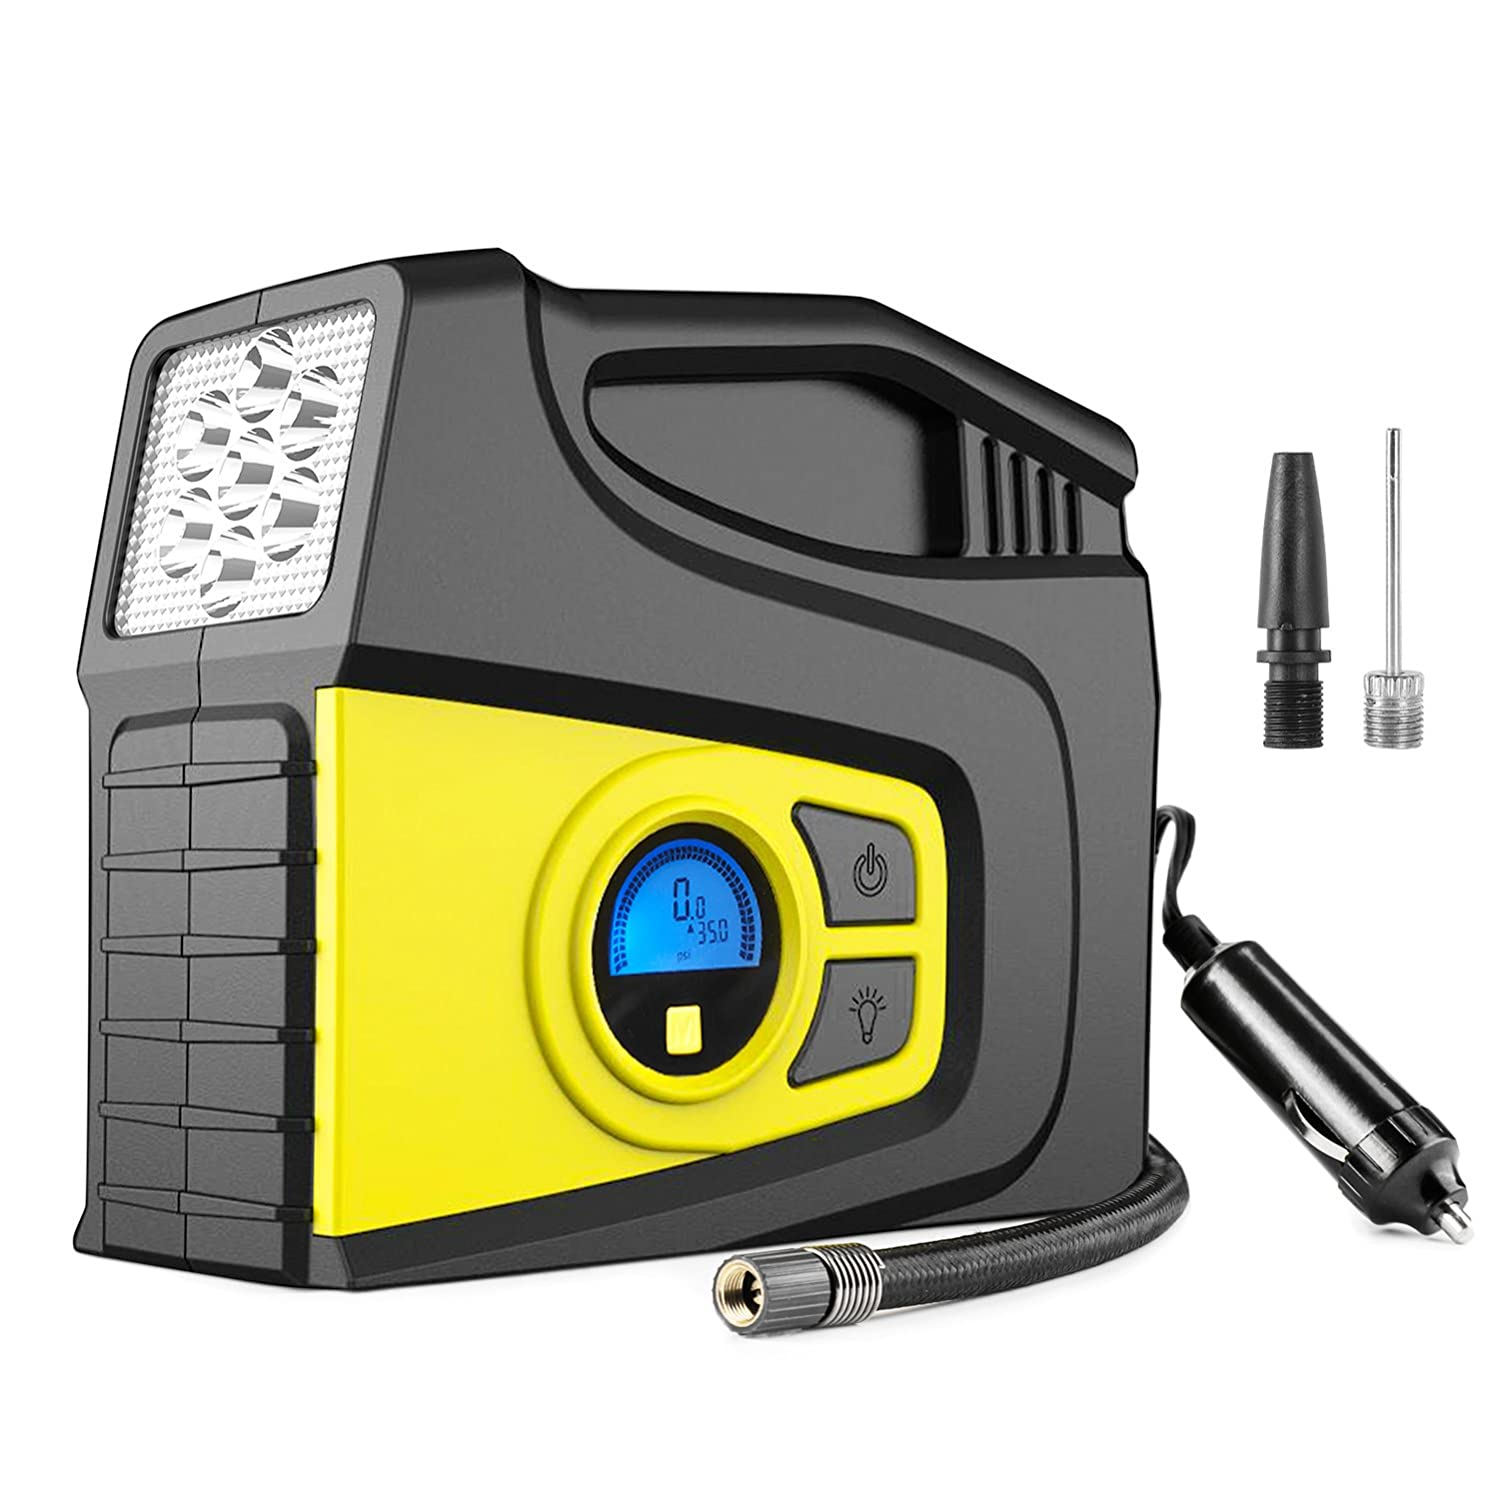 Balight Auto Digital Tire Inflator 12V 120PSI - Portable Air Compressor Pump with Pressure Gauge and 3 Modles Emergency Lighting for Car, SUV, Trunk, Motorcycle, Bicycle, Ball,and Others Inflatables